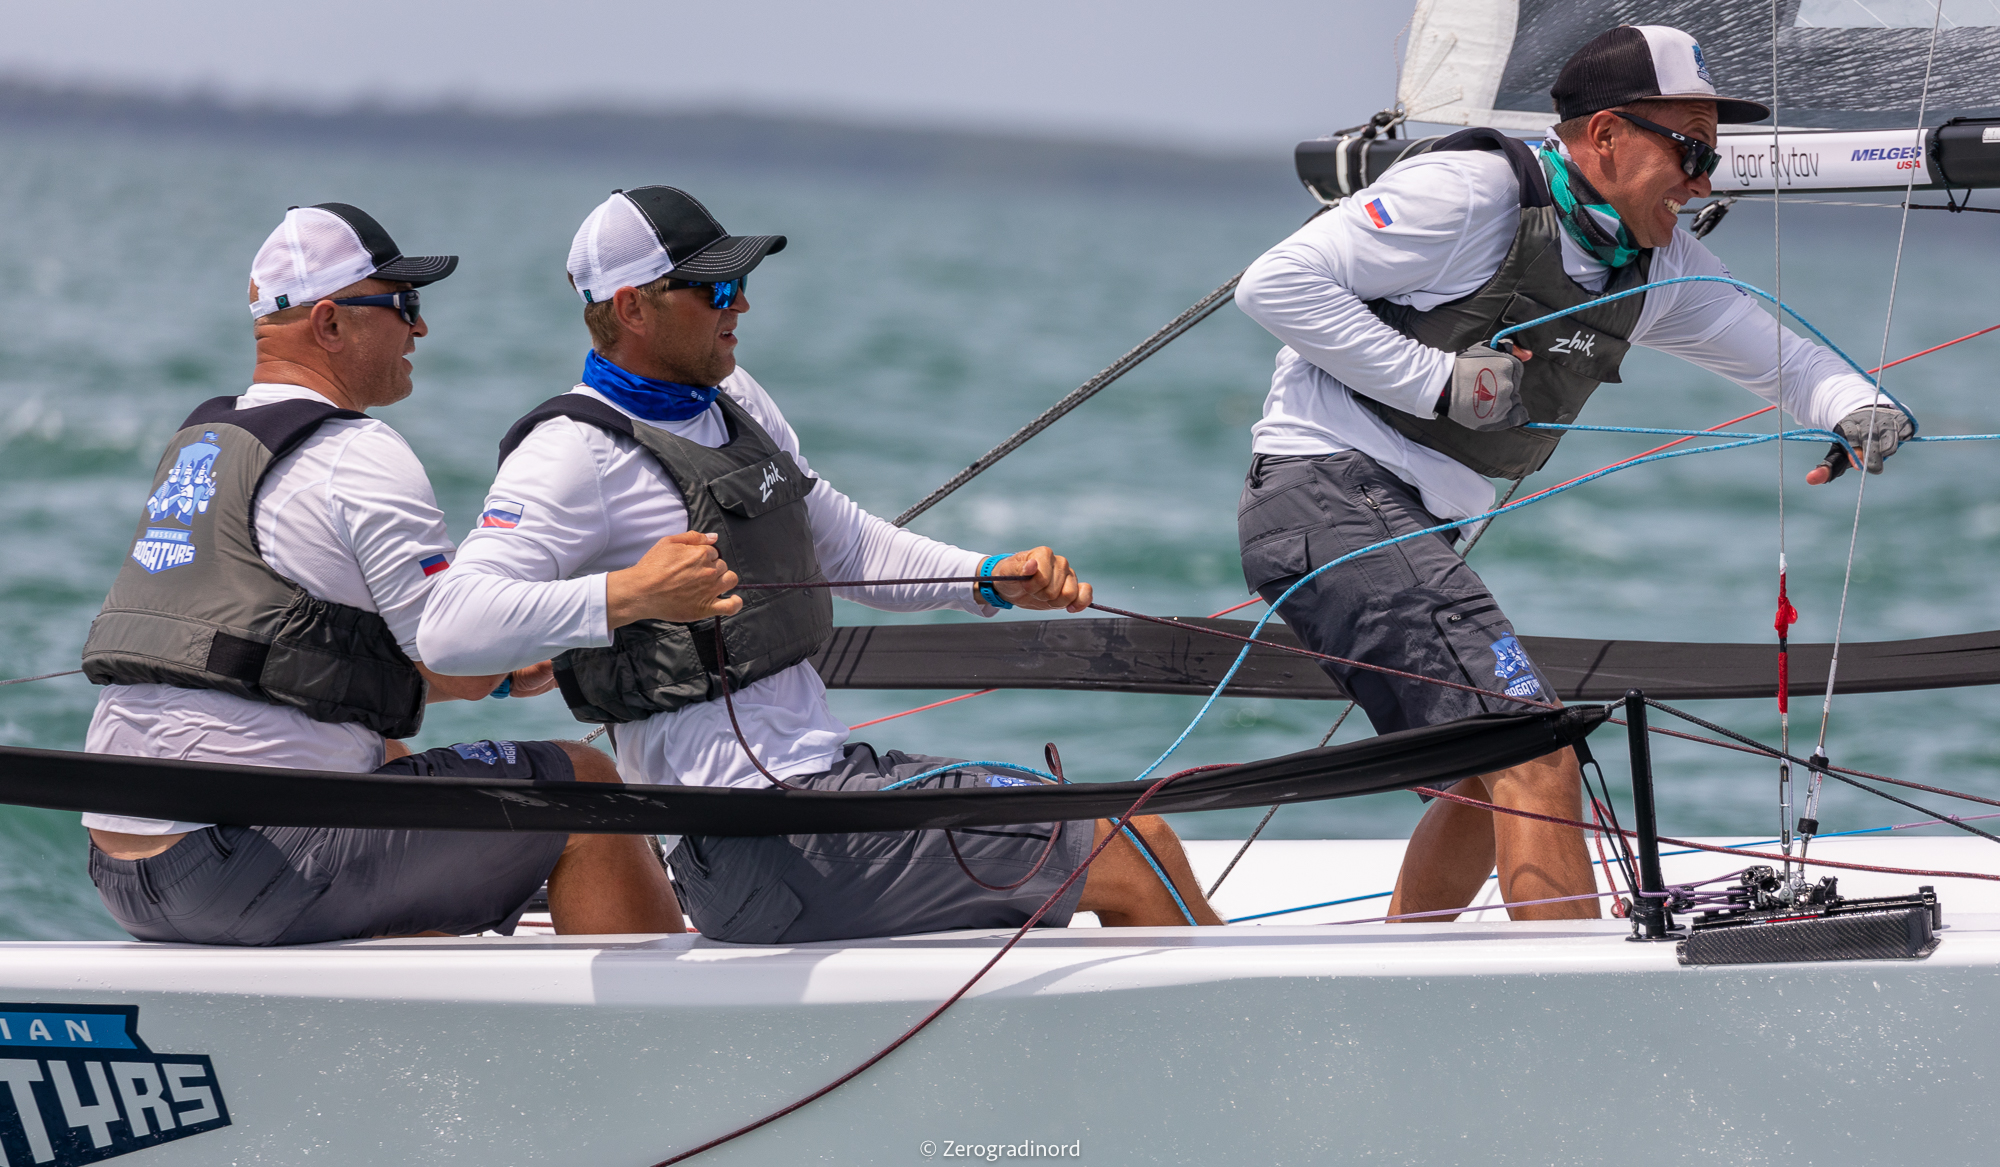 Melges20_050419_low-59.jpg